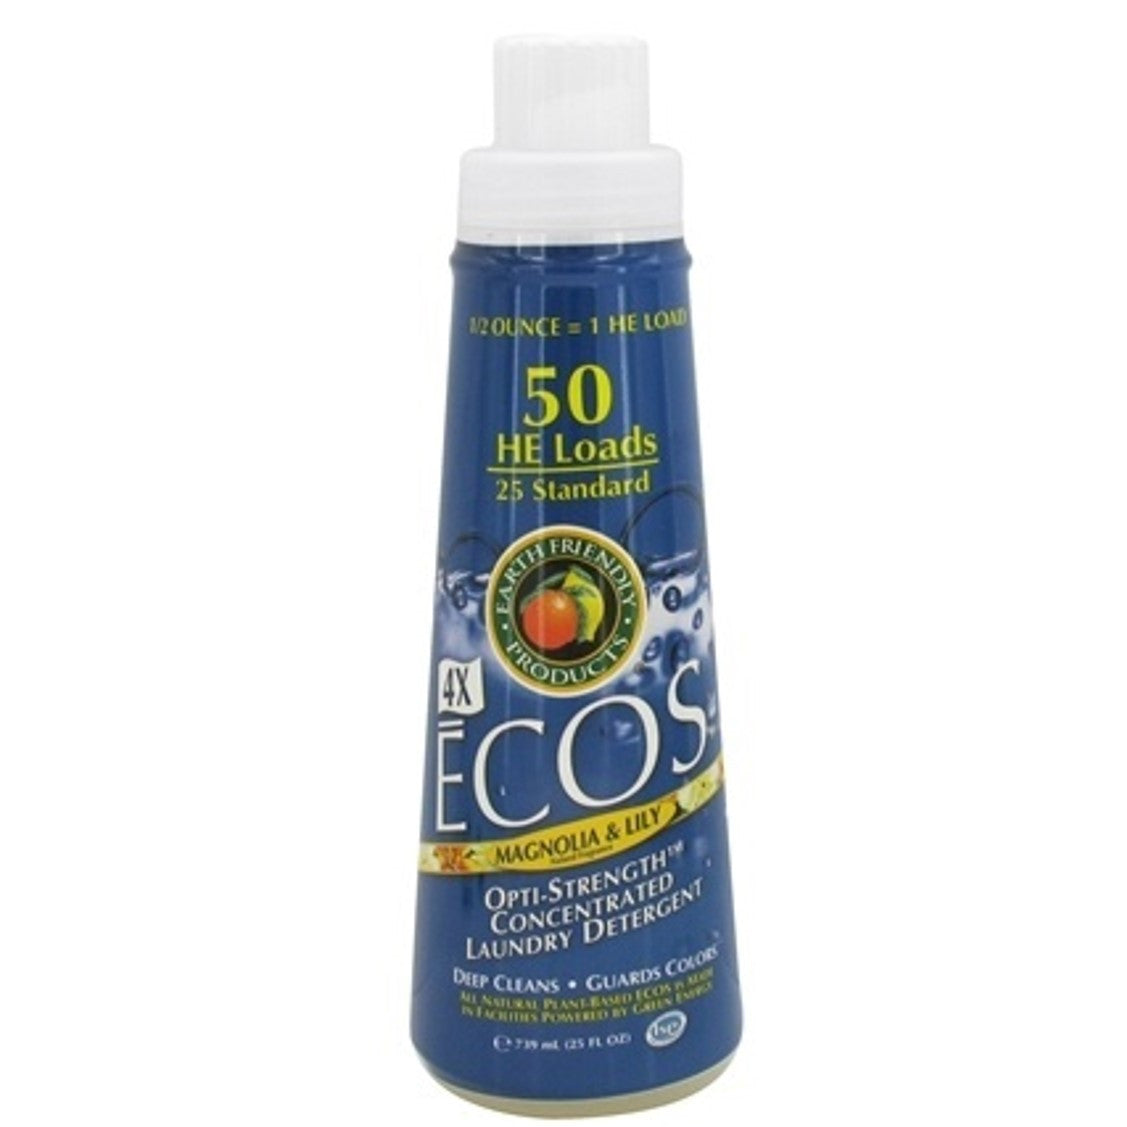 Earth Friendly 4X Concentrate ECOS Laundry Liquid - Magnolia & Lily, 739 ml.